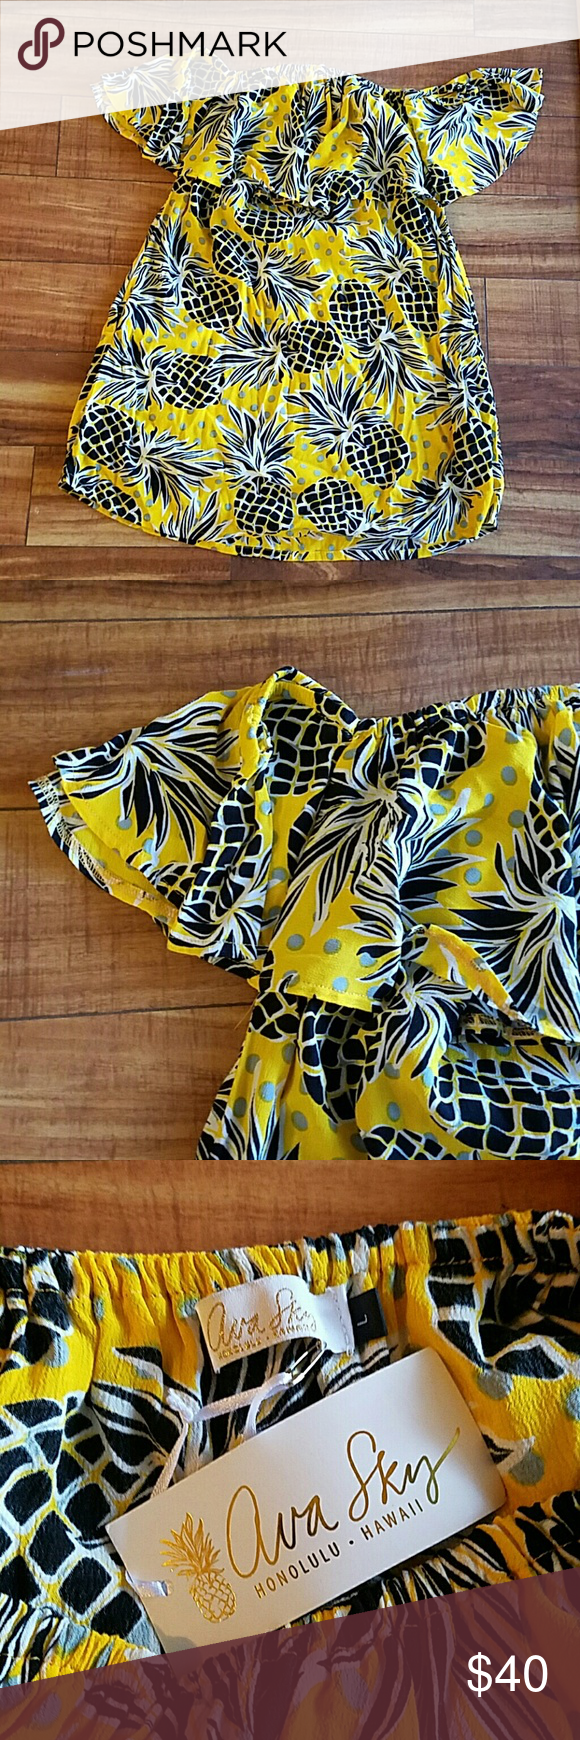 Ava Sky Salsa Dress Size L Such a fun dress! Off the shoulder with cute pineapple print.  Perfect vacation/beach dress! Ava Sky Dresses